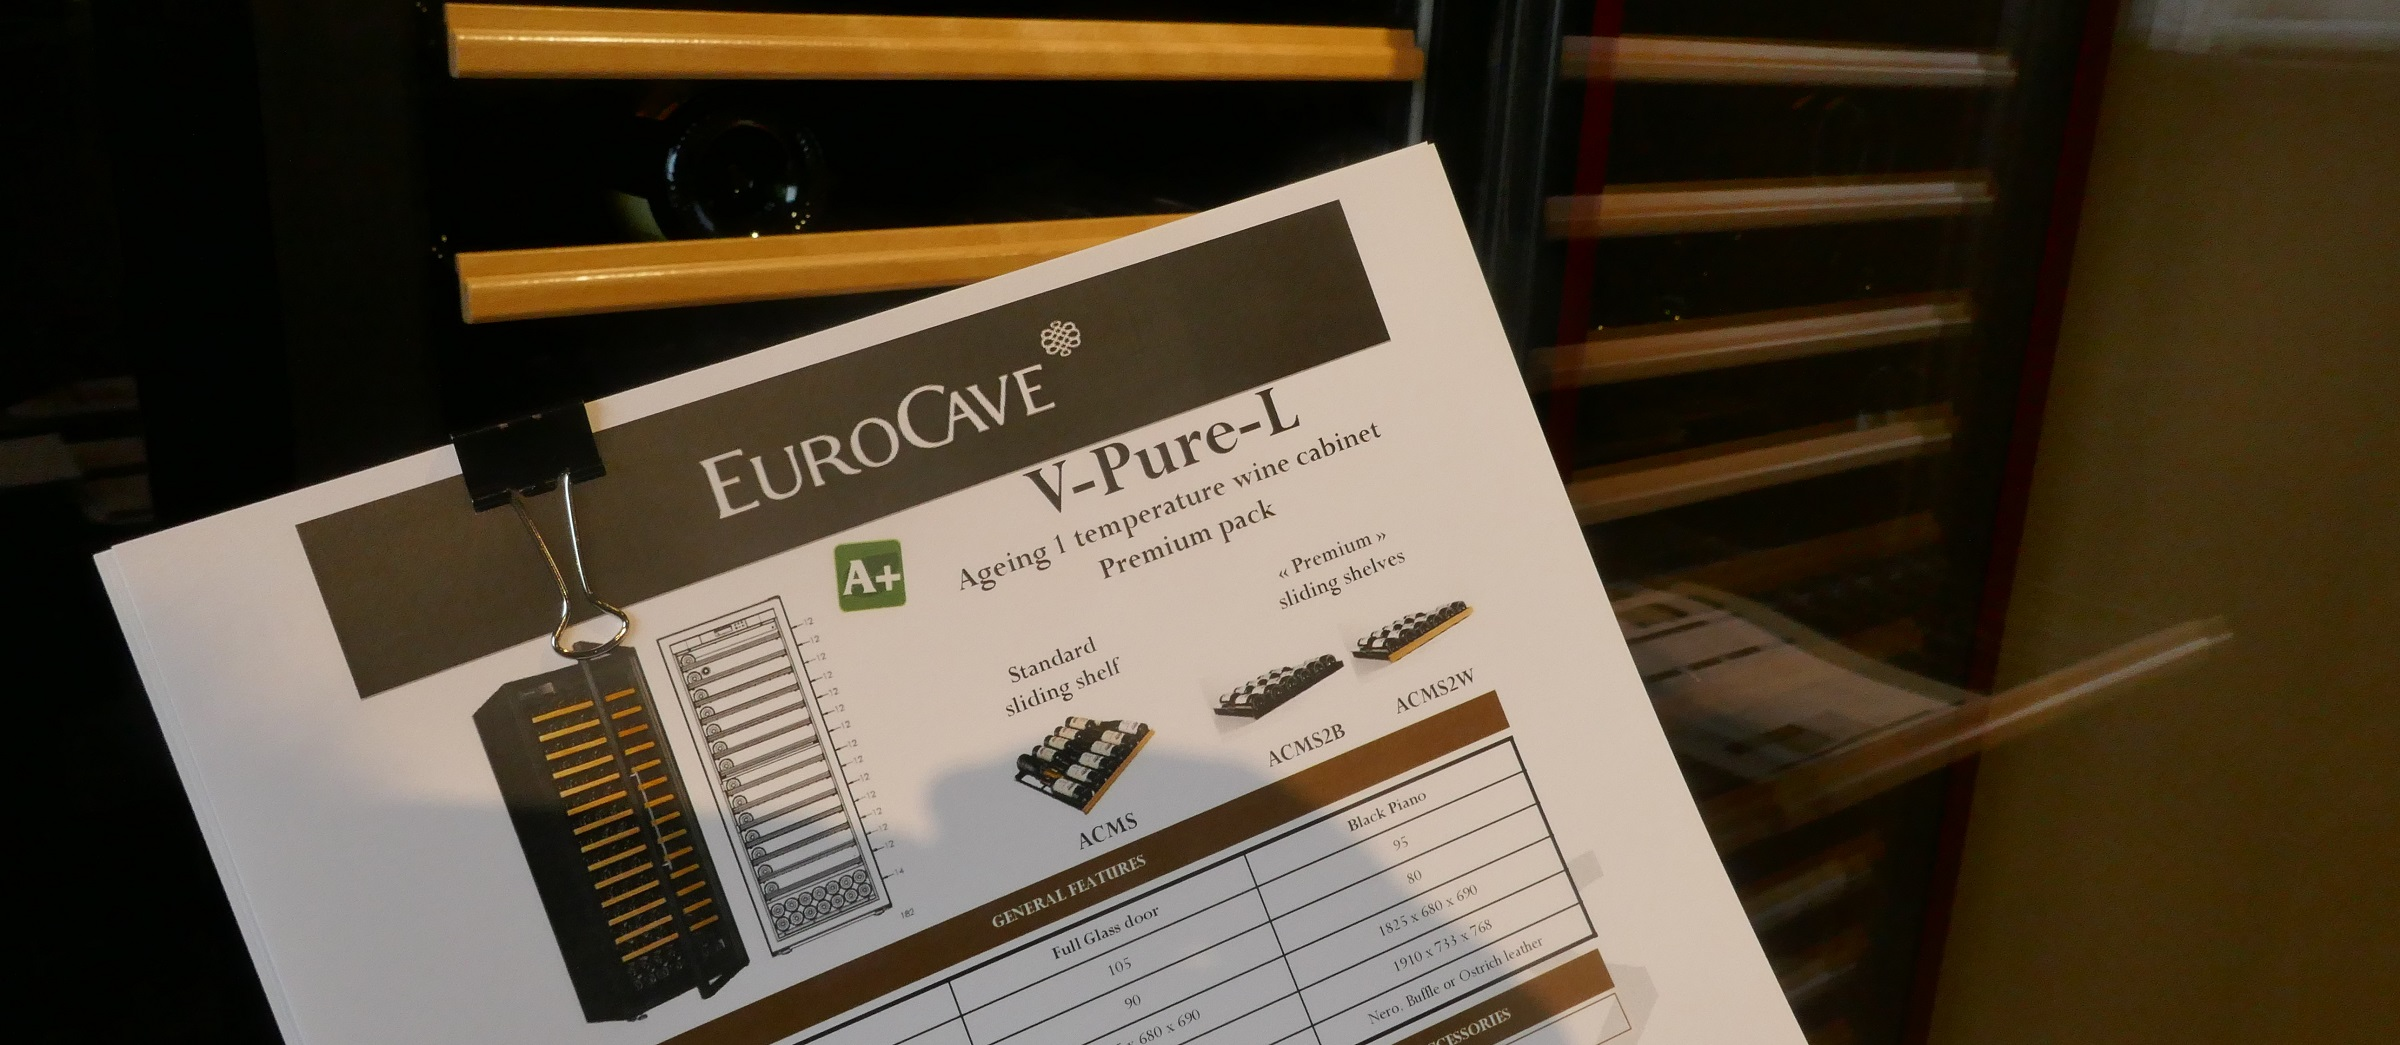 Eliminate Vibrations with EuroCave